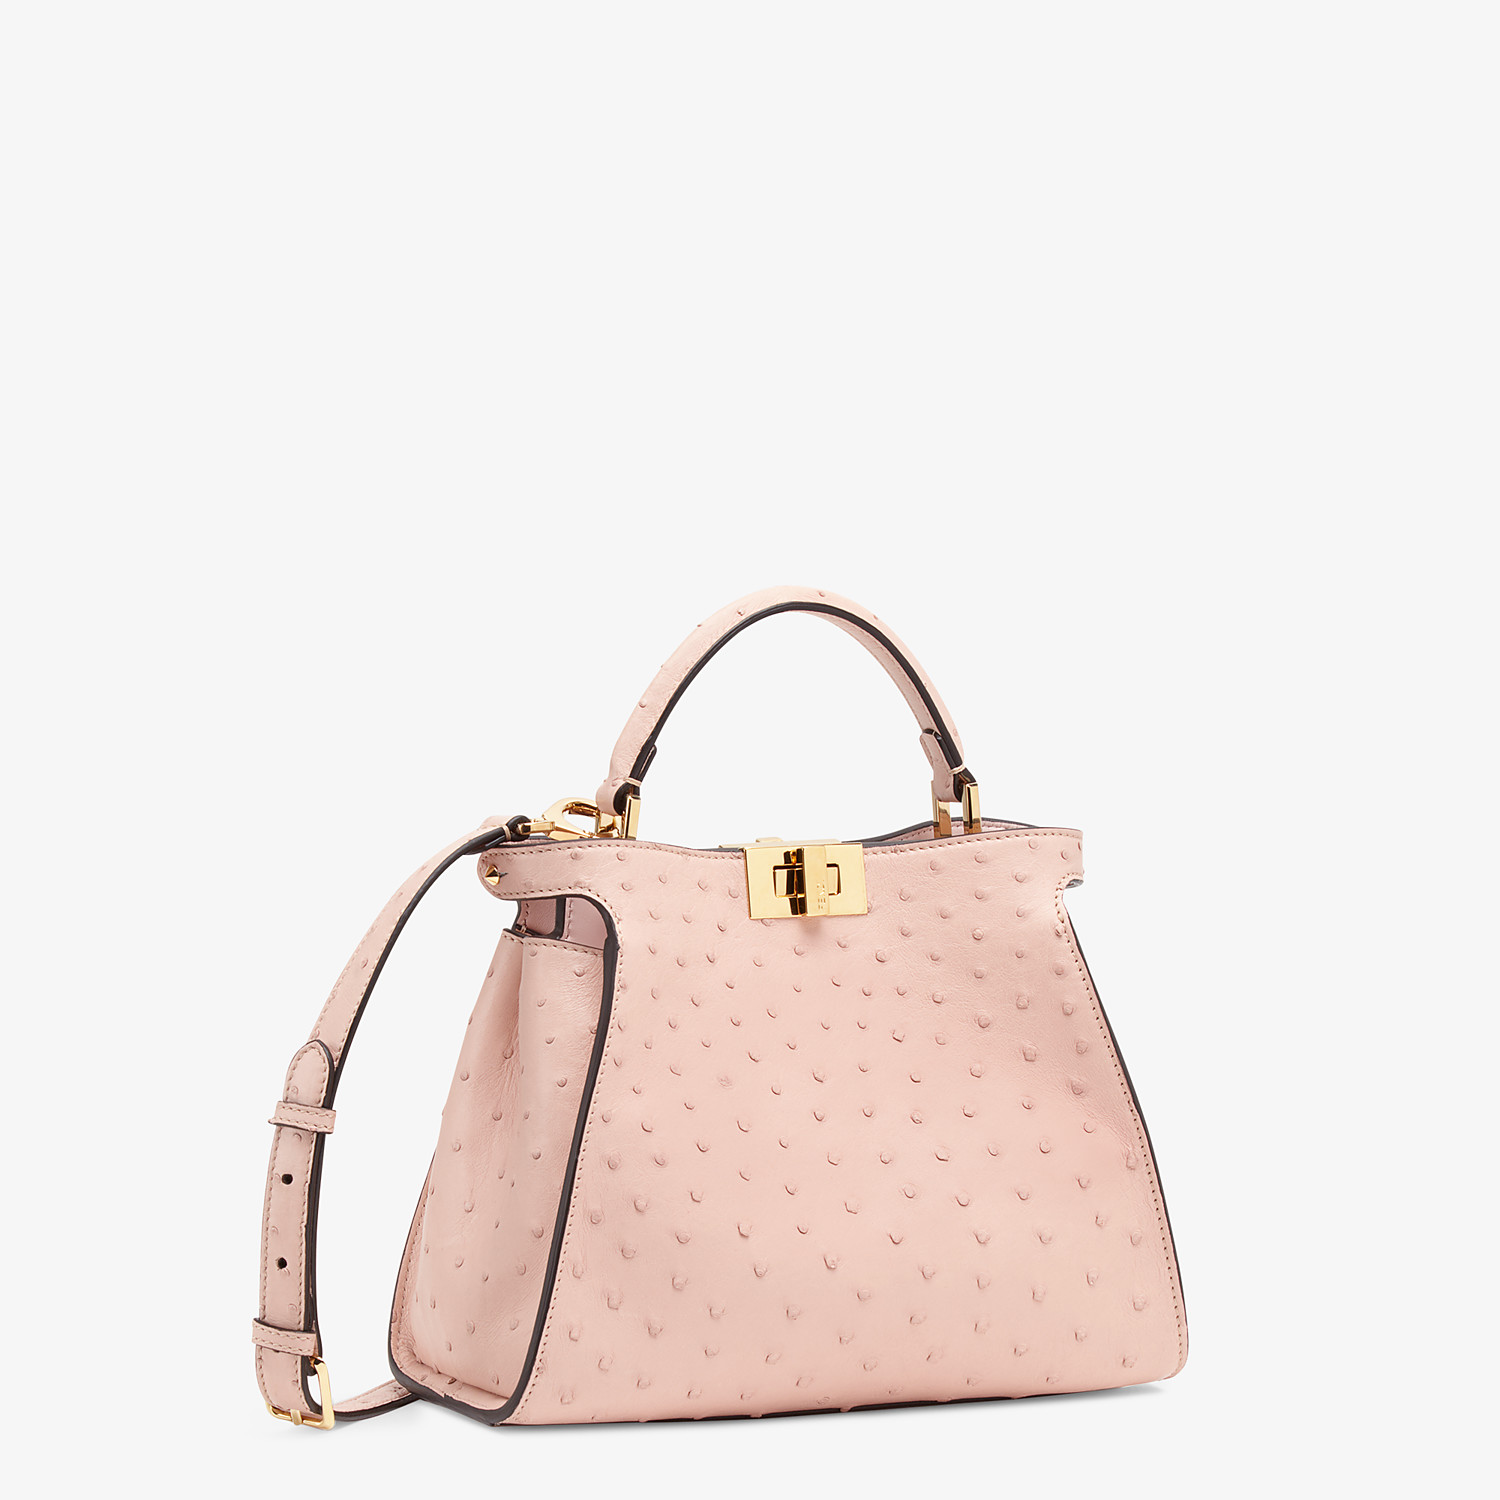 FENDI PEEKABOO ICONIC ESSENTIALLY - Pink ostrich leather bag - view 2 detail